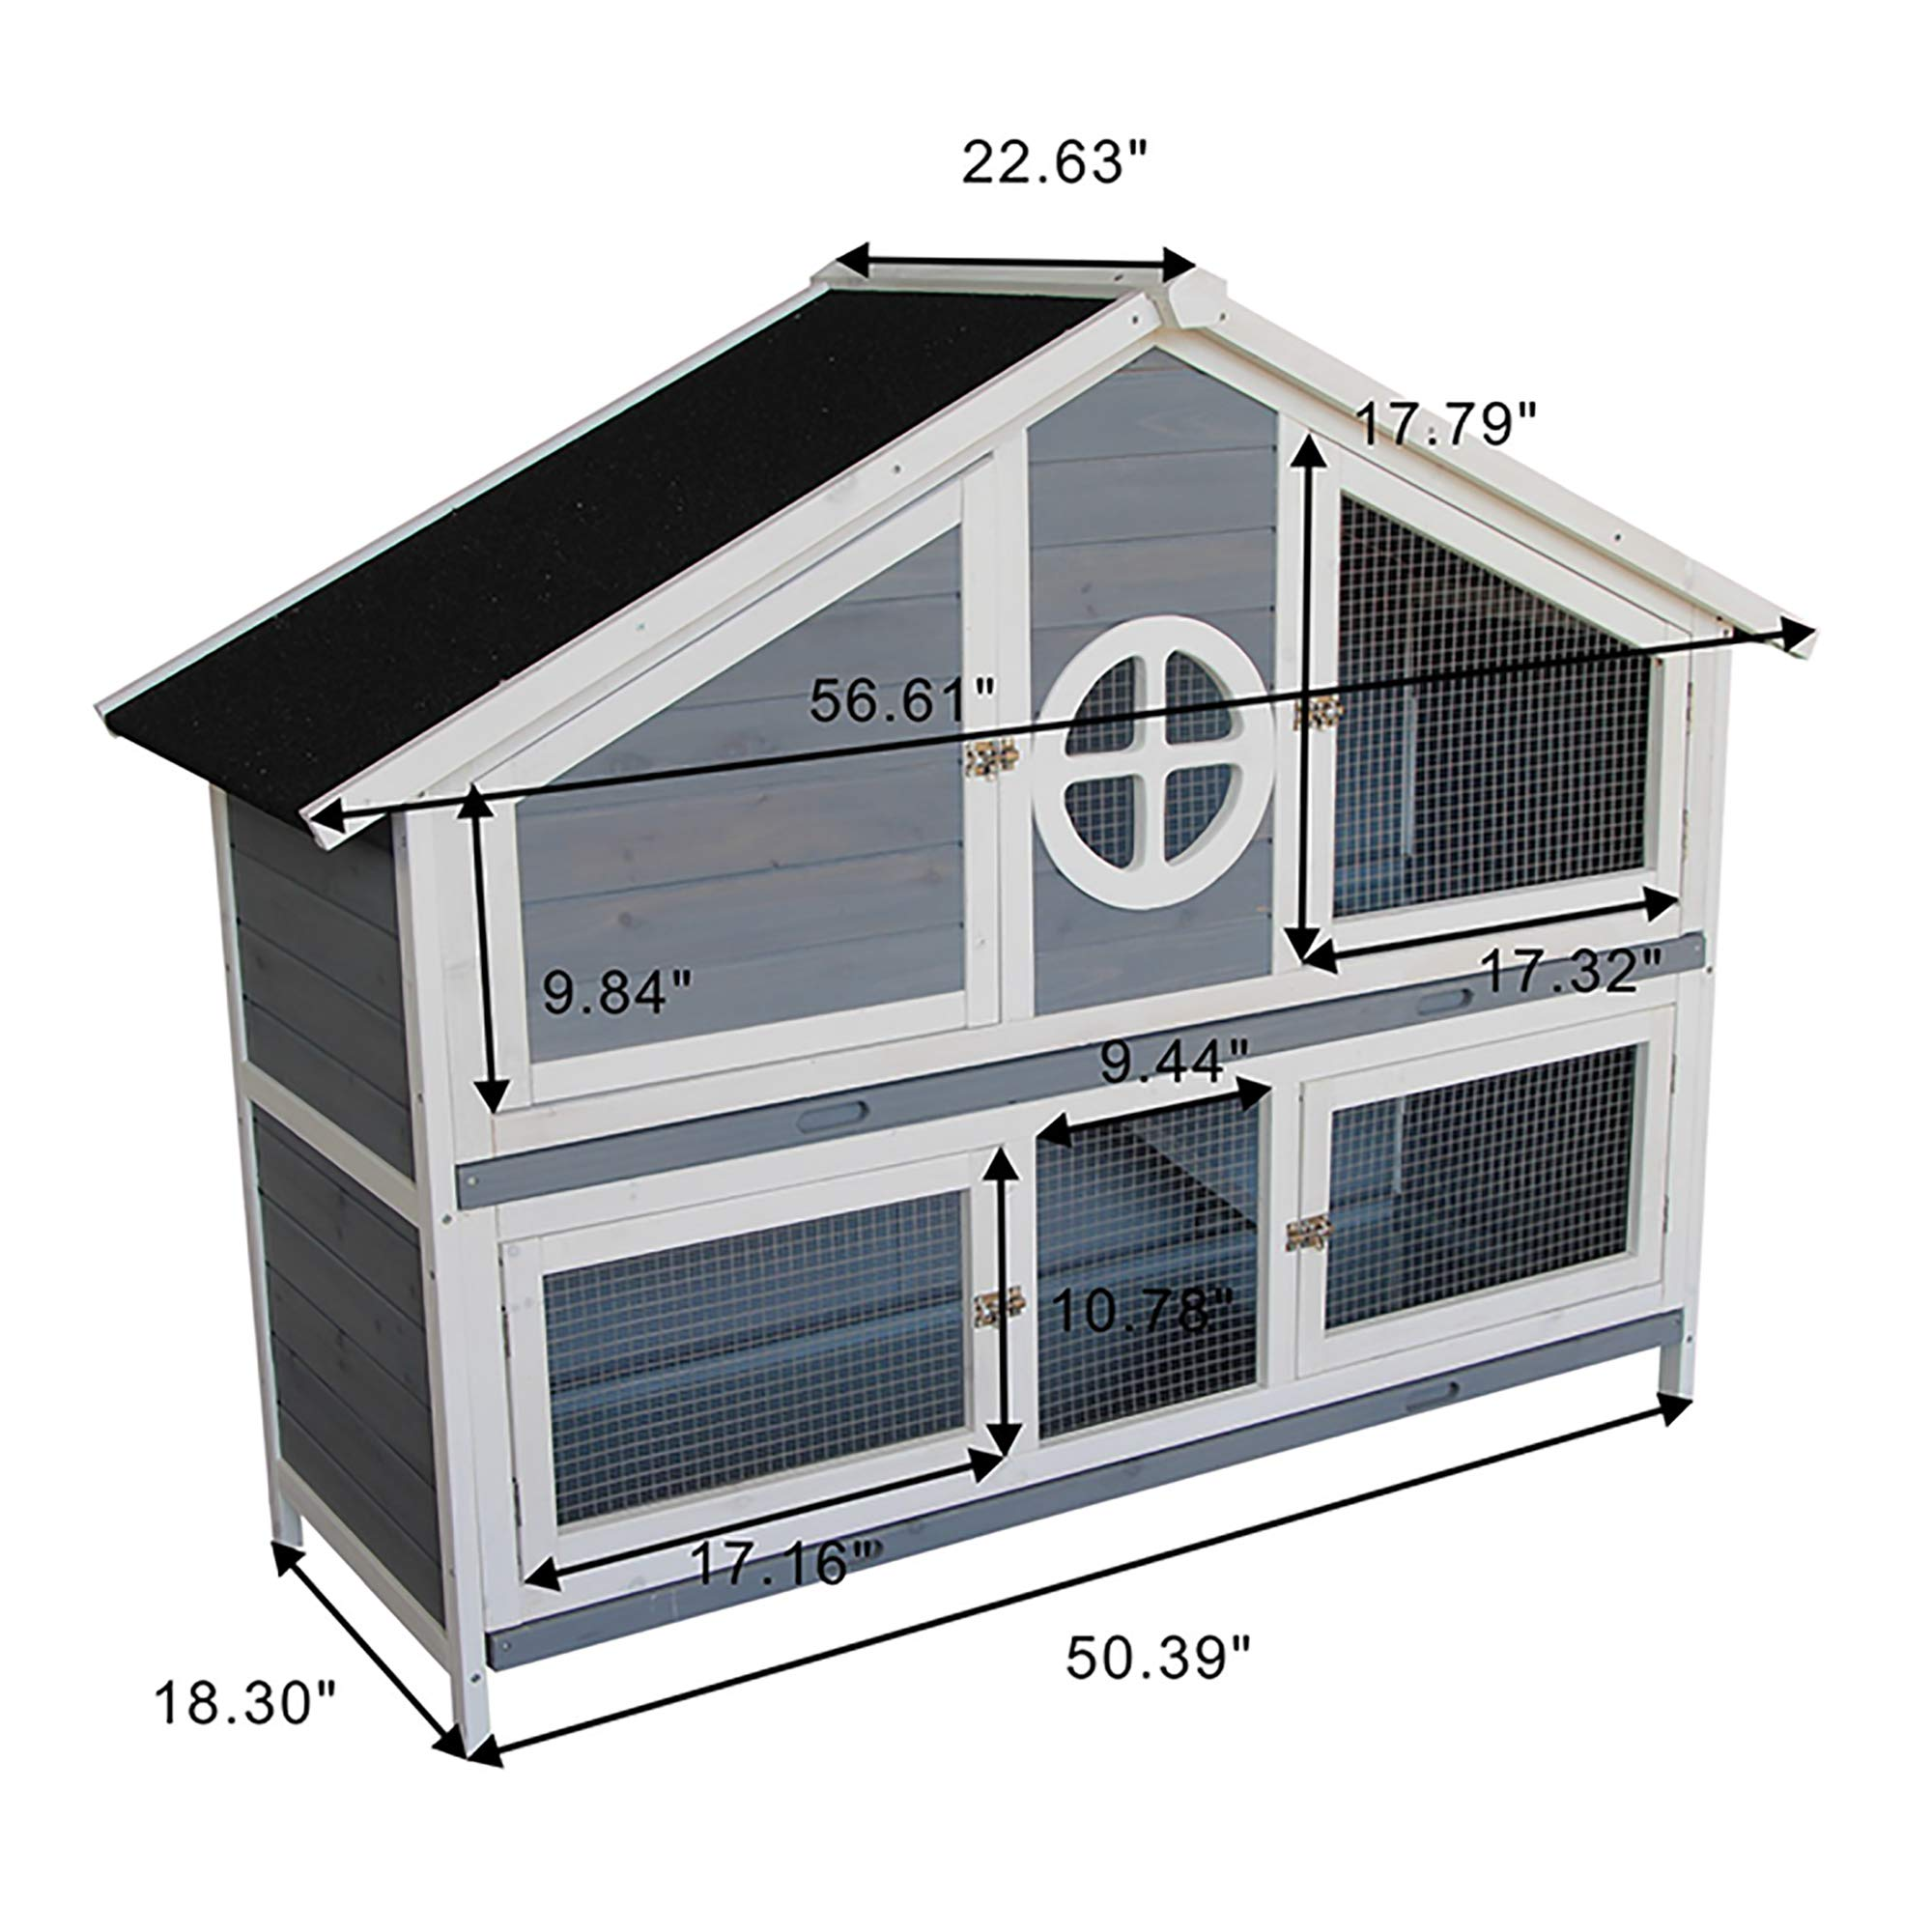 Rhomtree Large Wooden Rabbit Hutch Chicken Coop Bunny Animal Hen Cage House Great for Rabbits, Chickens, Ducks, and Other Poultry (Grey) by Rhomtree (Image #6)